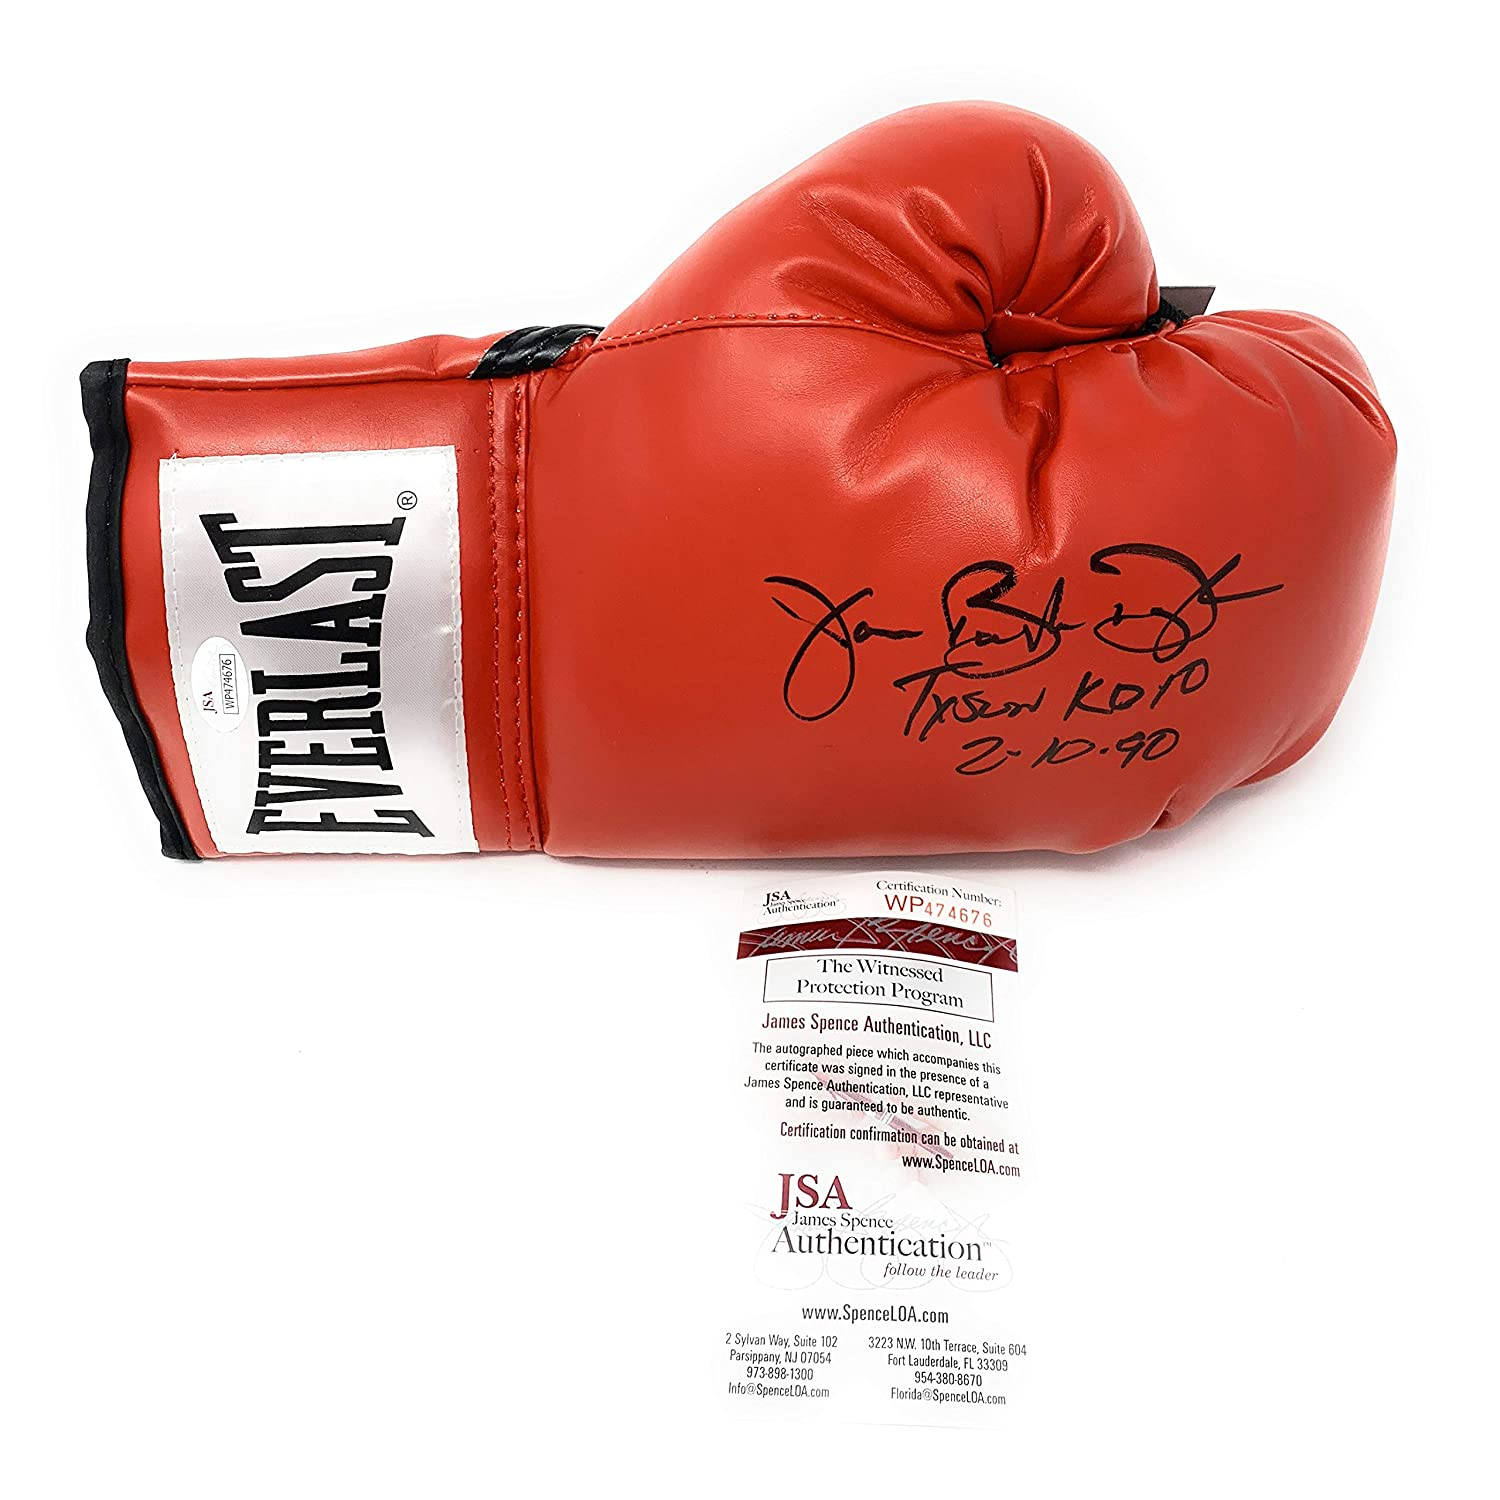 James Buster Douglas Signed Autograph Boxing Glove TYSON KO Inscribed JSA Witnessed Certified